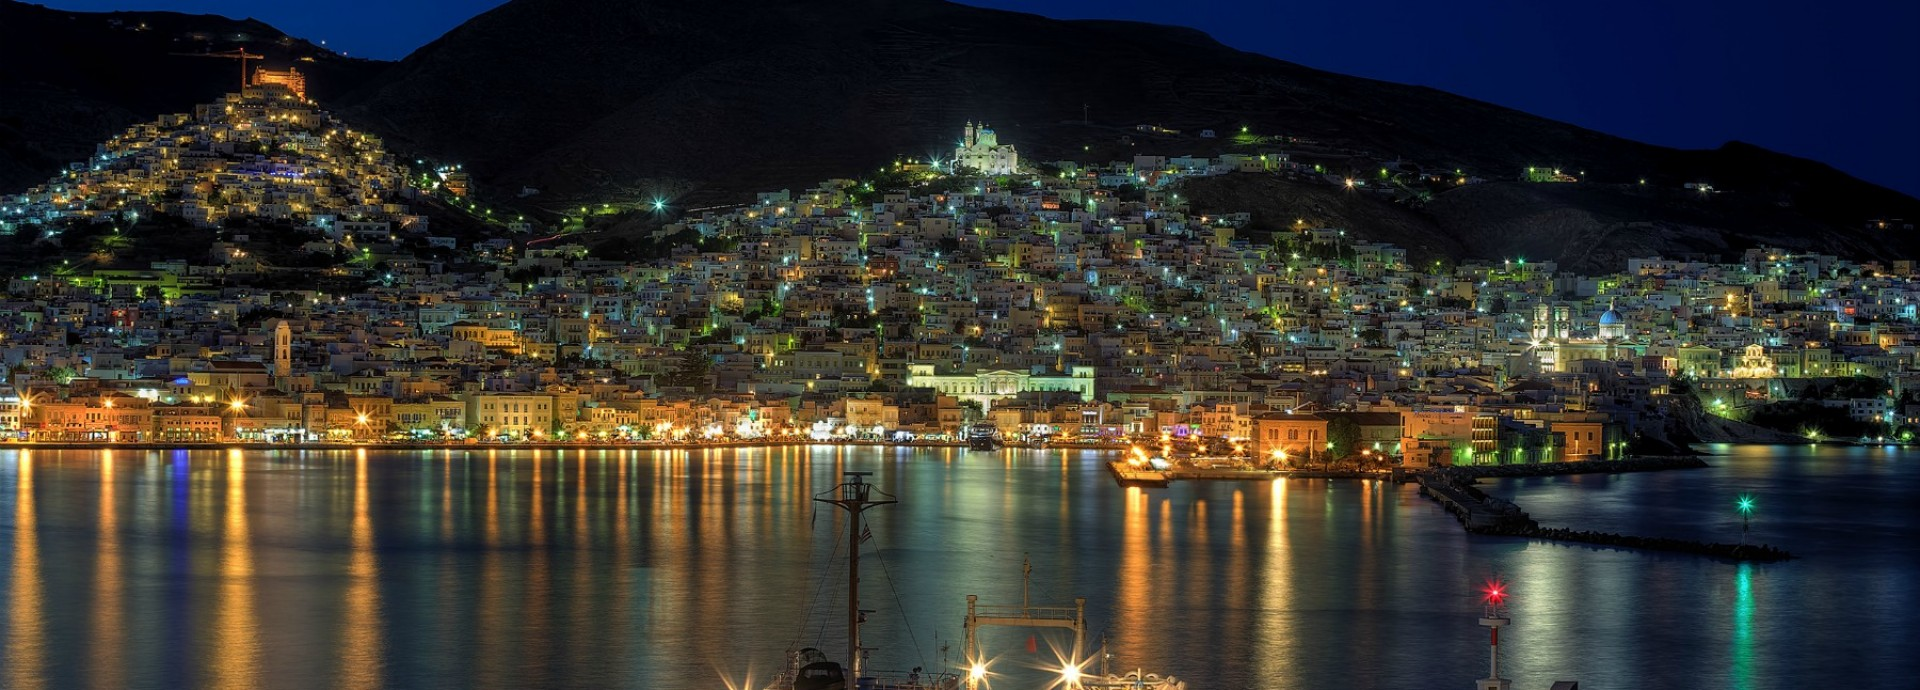 Syros at night